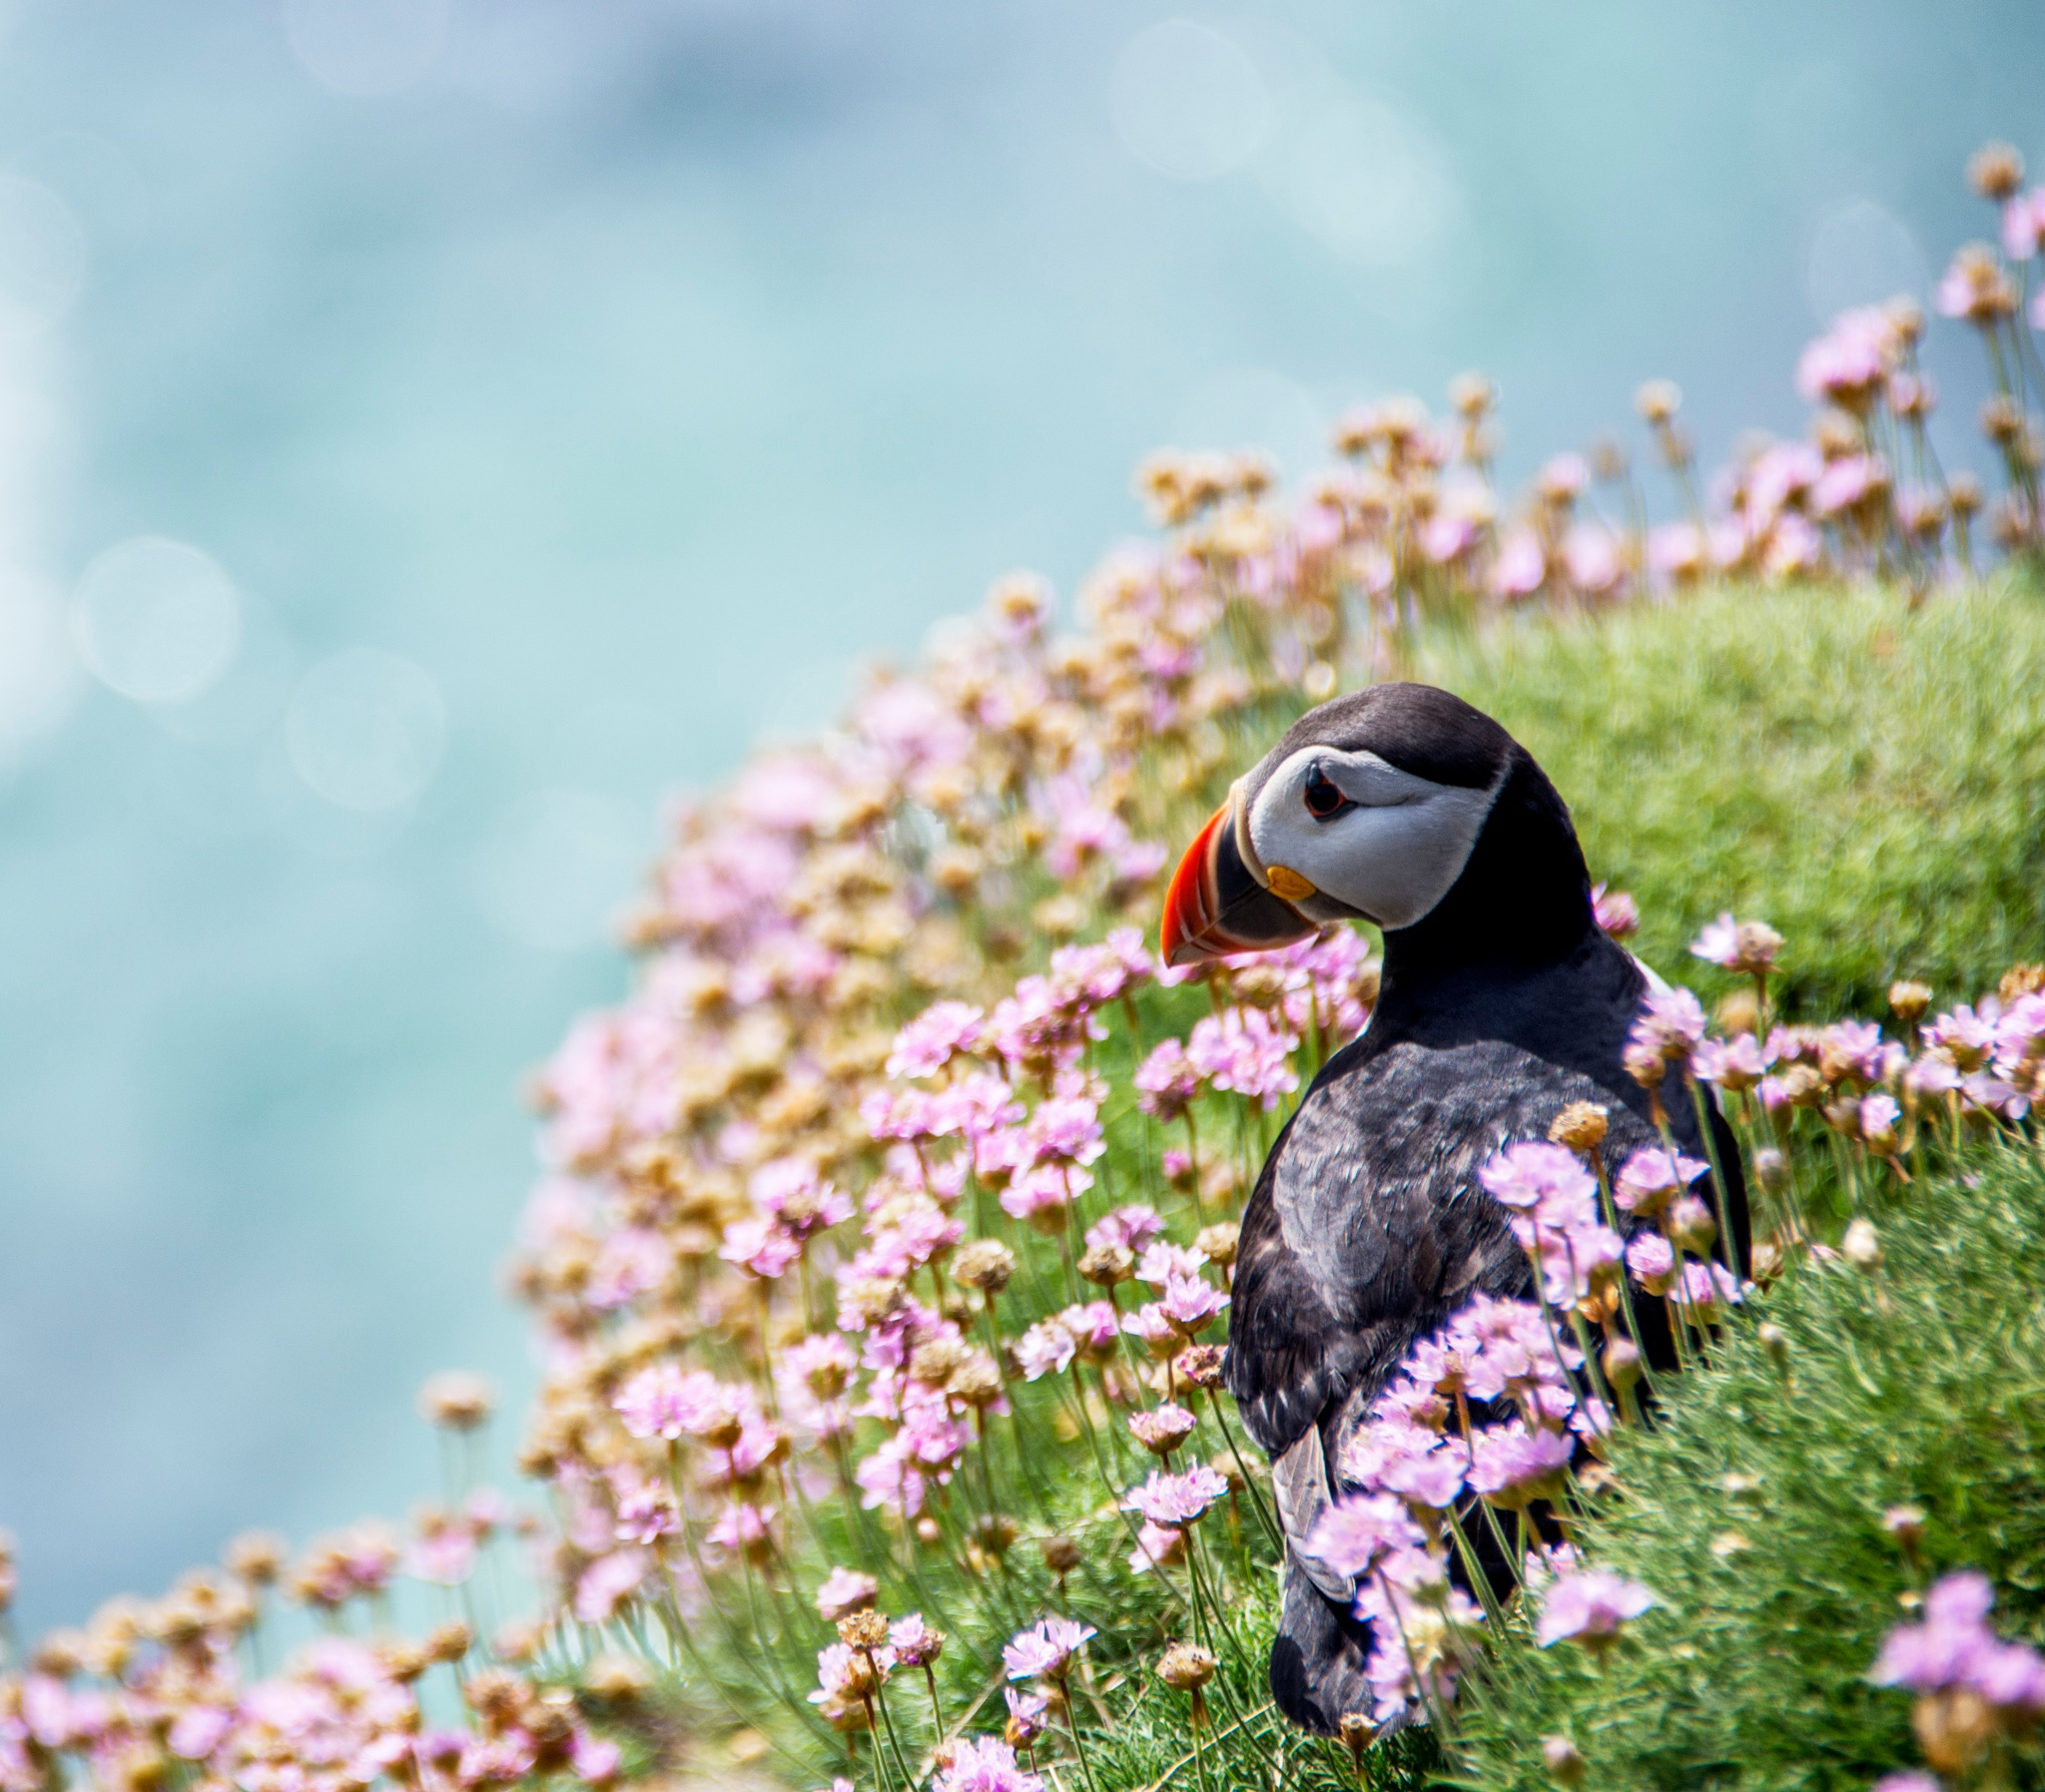 A Puffin on The Saltee Islands. by Pat kehoe